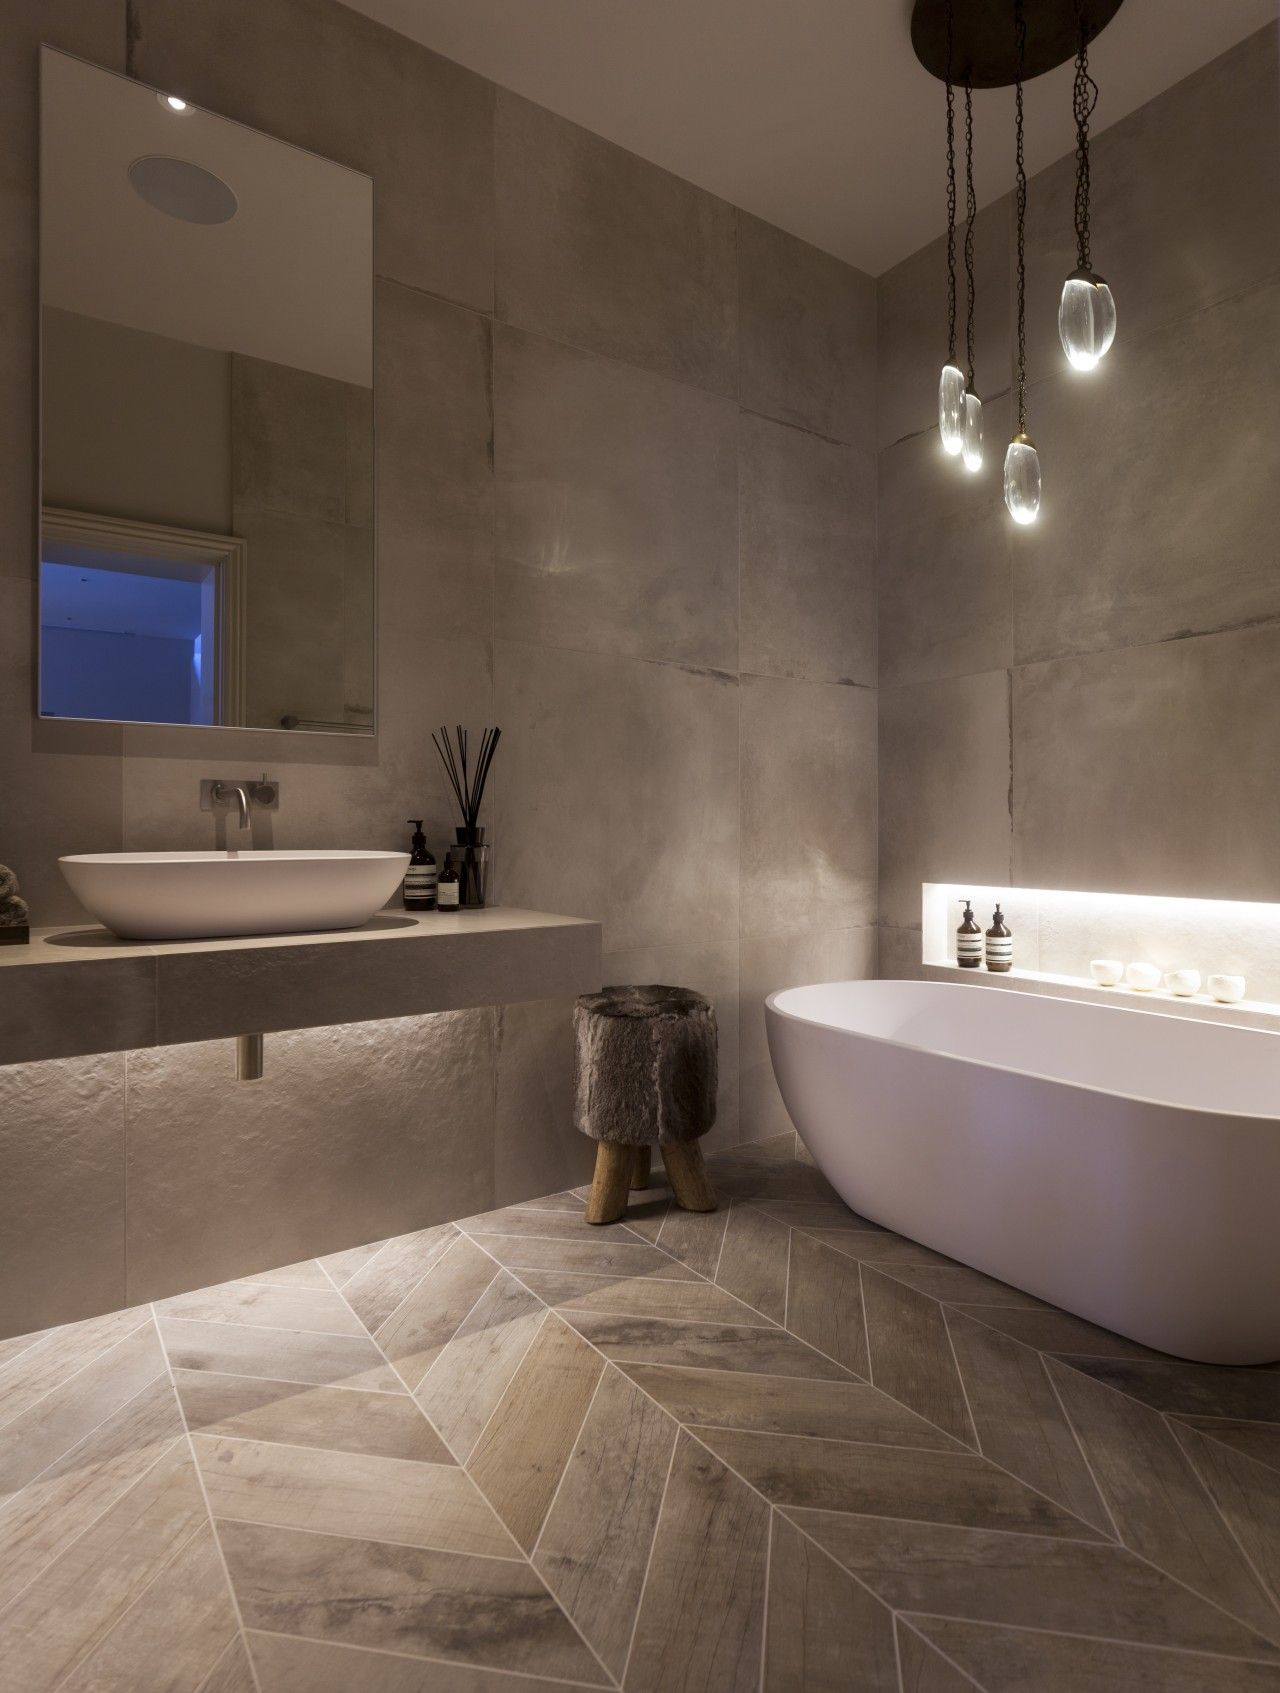 Private residence bath room janey butler interiors for House bathroom design